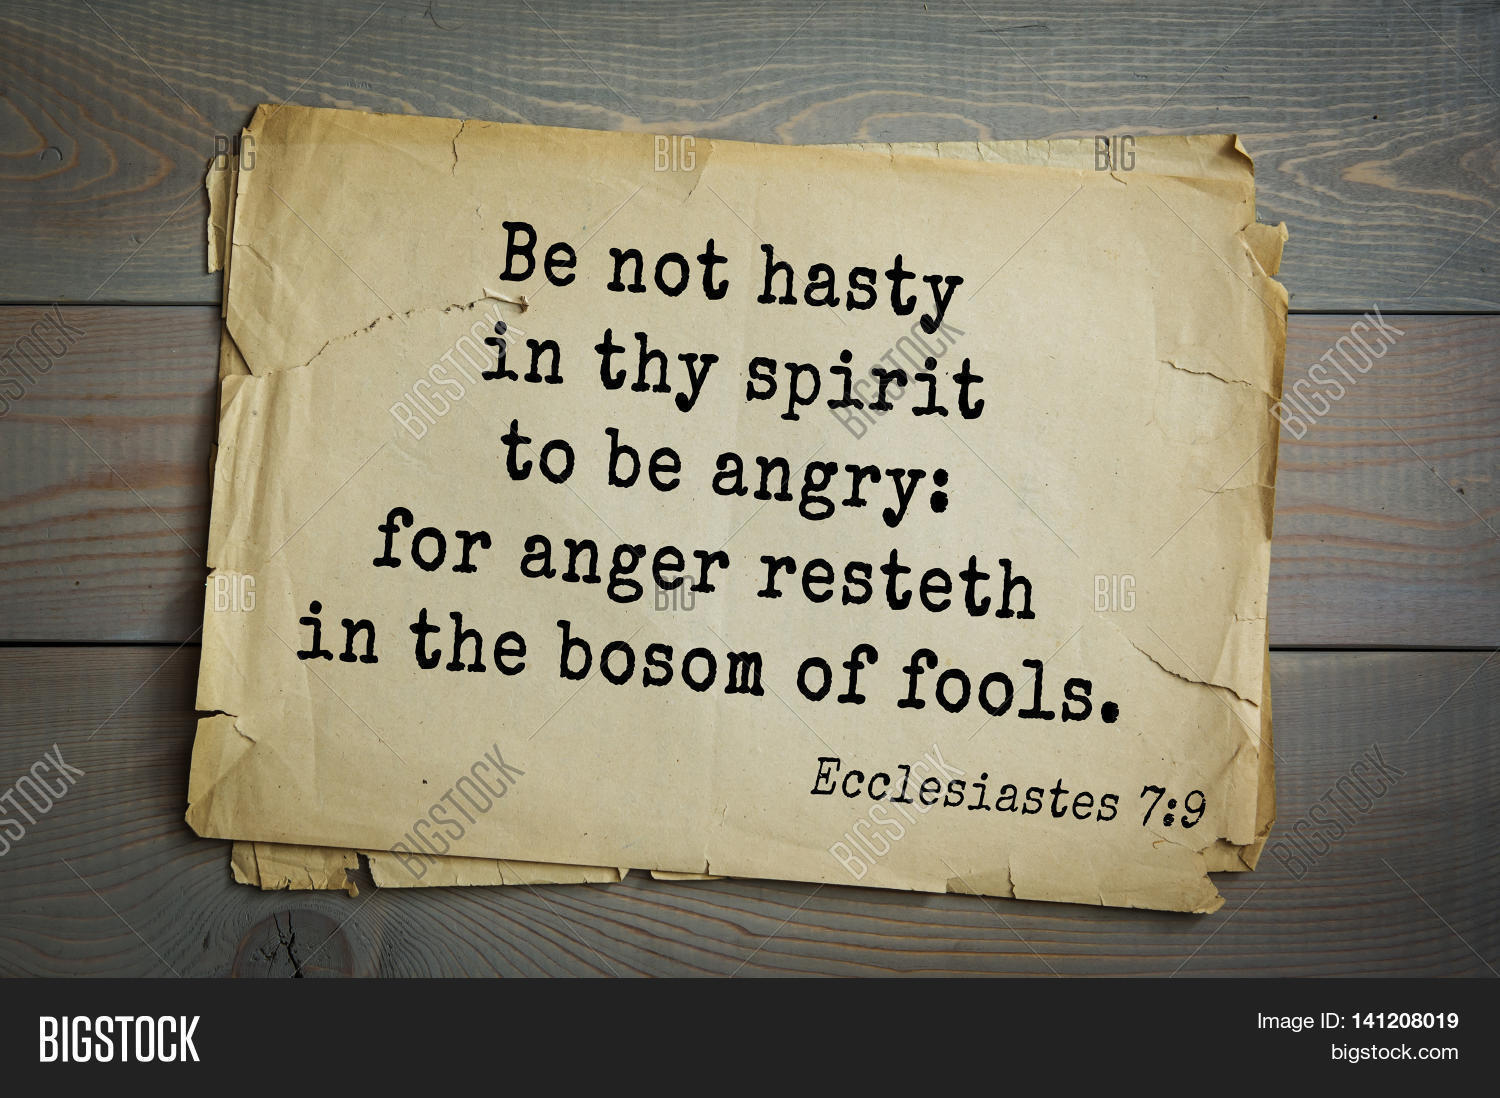 Anger Ecclesiastes Hasty Bosom Be Be Thy O 7 Angry Not Spirit Resteth 9